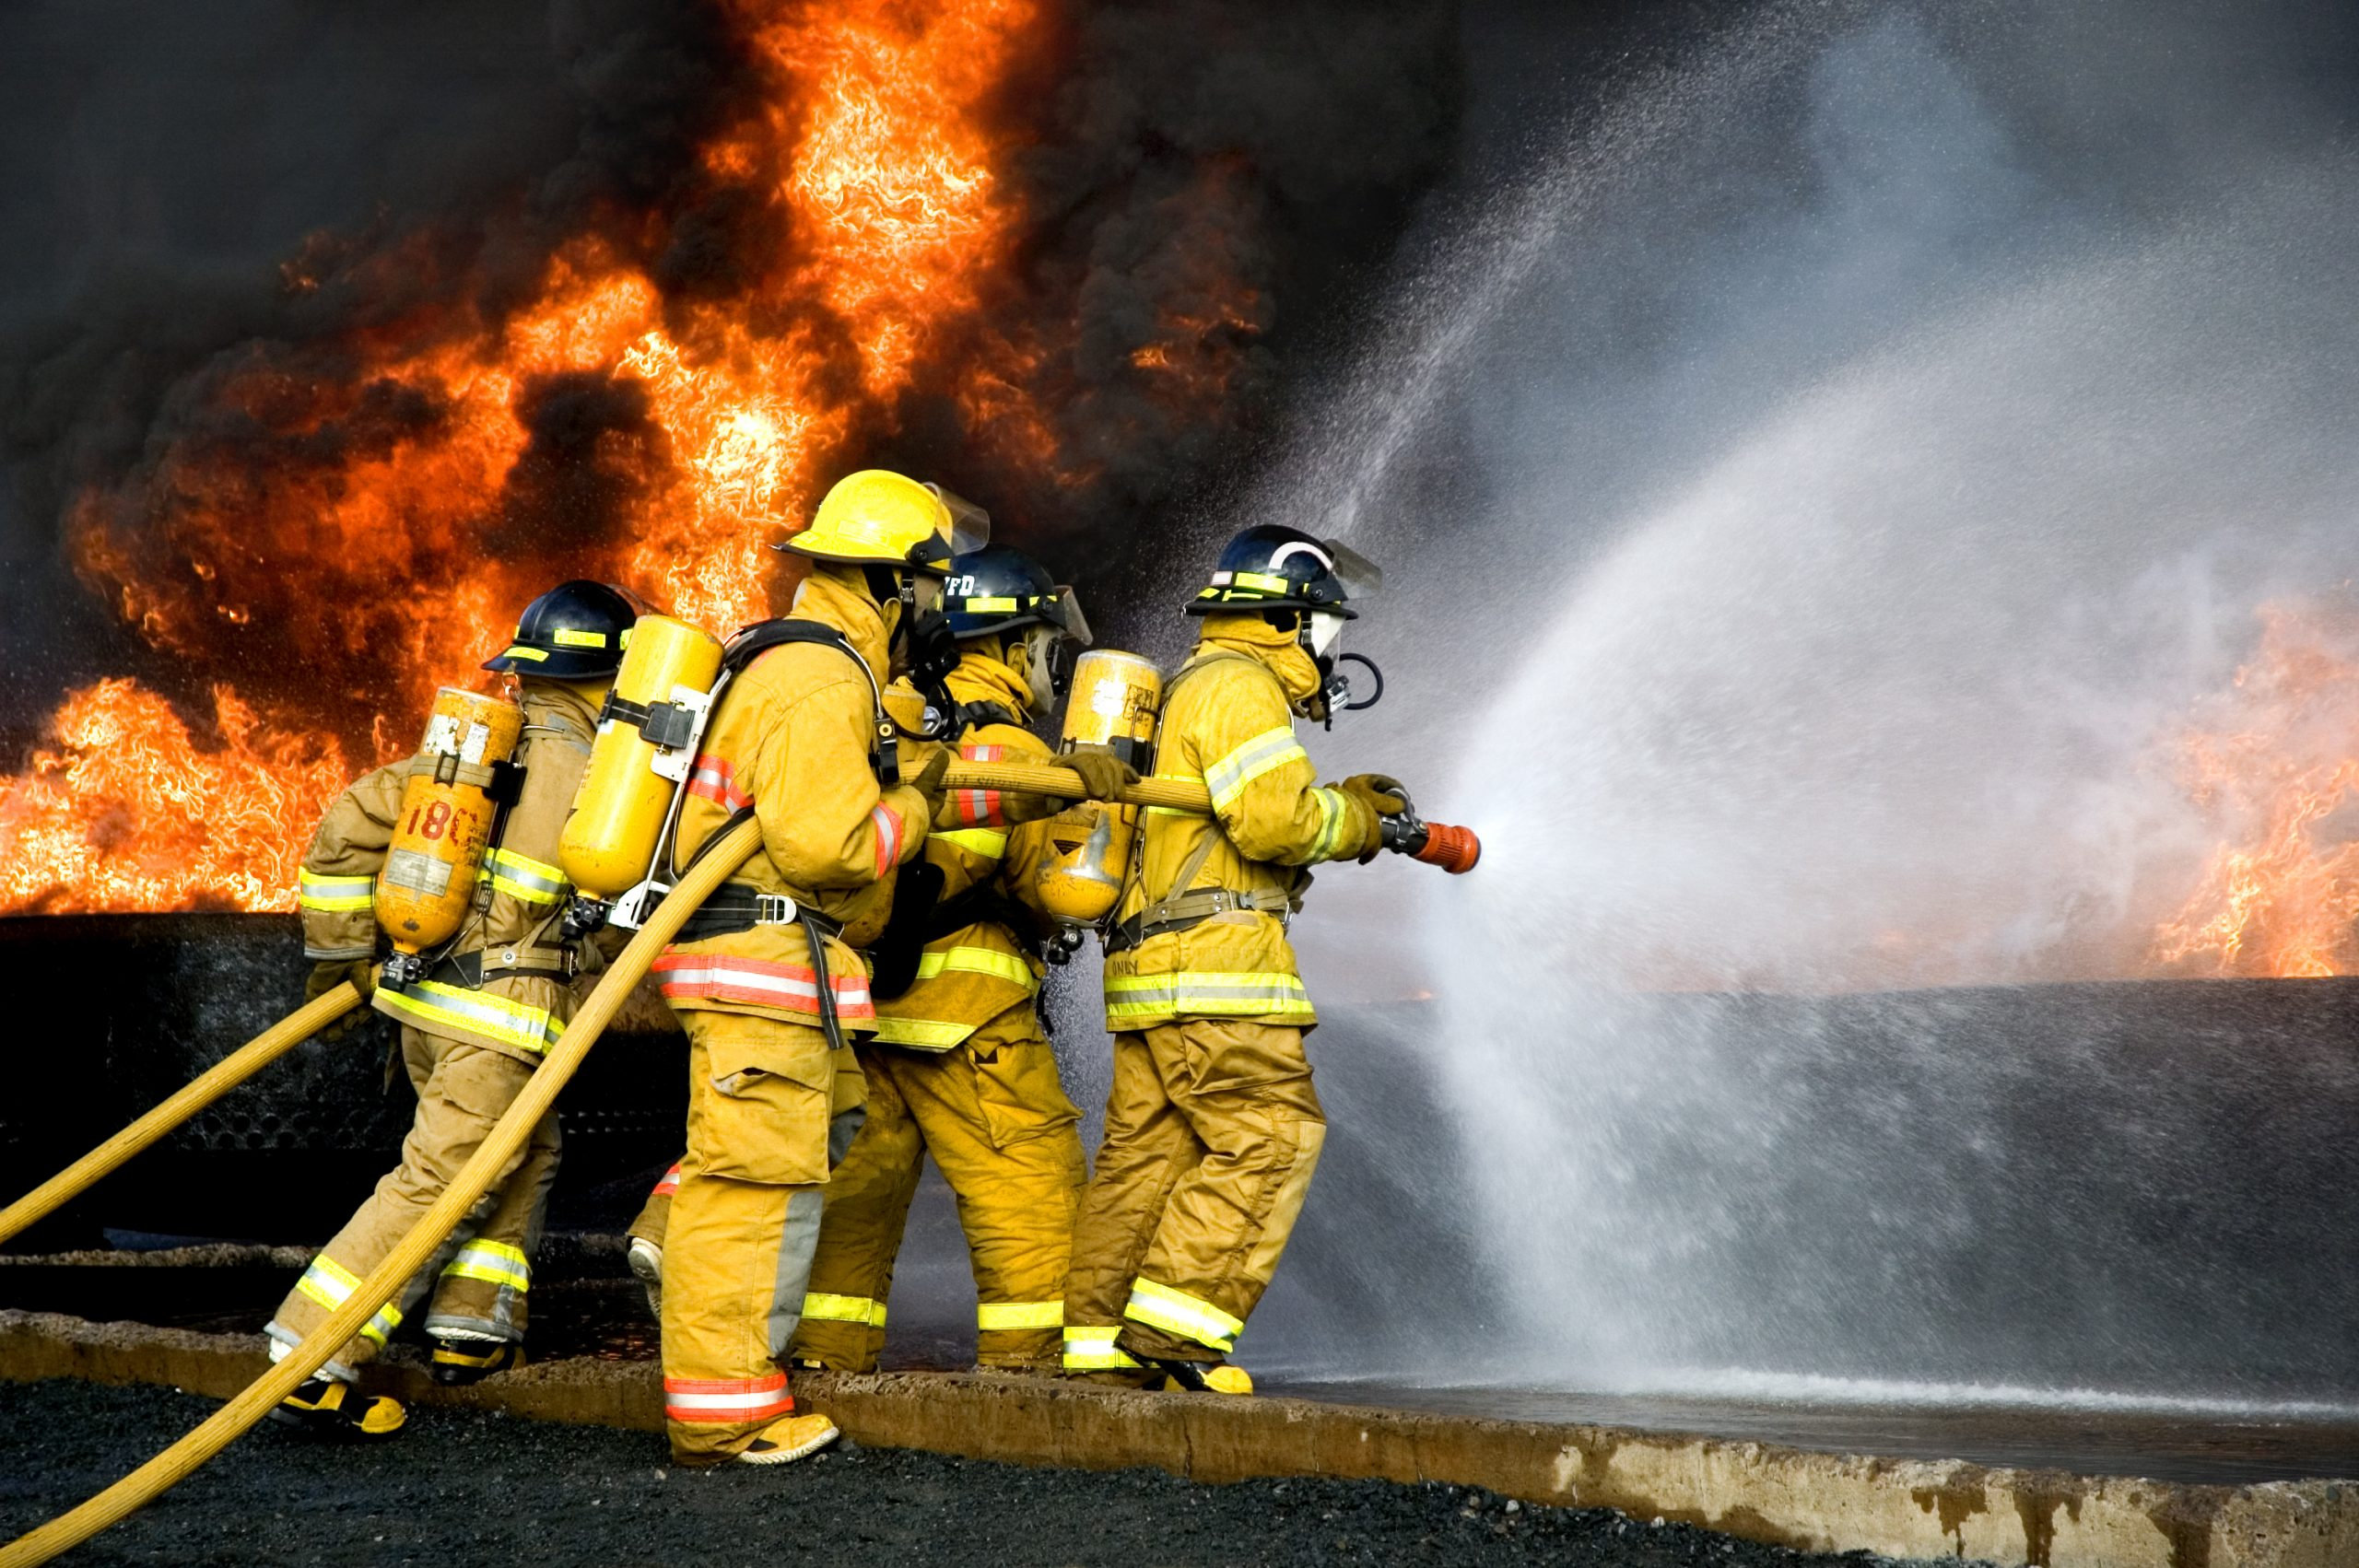 Kansas Insurance Department Distributes $15 million to local firefighters